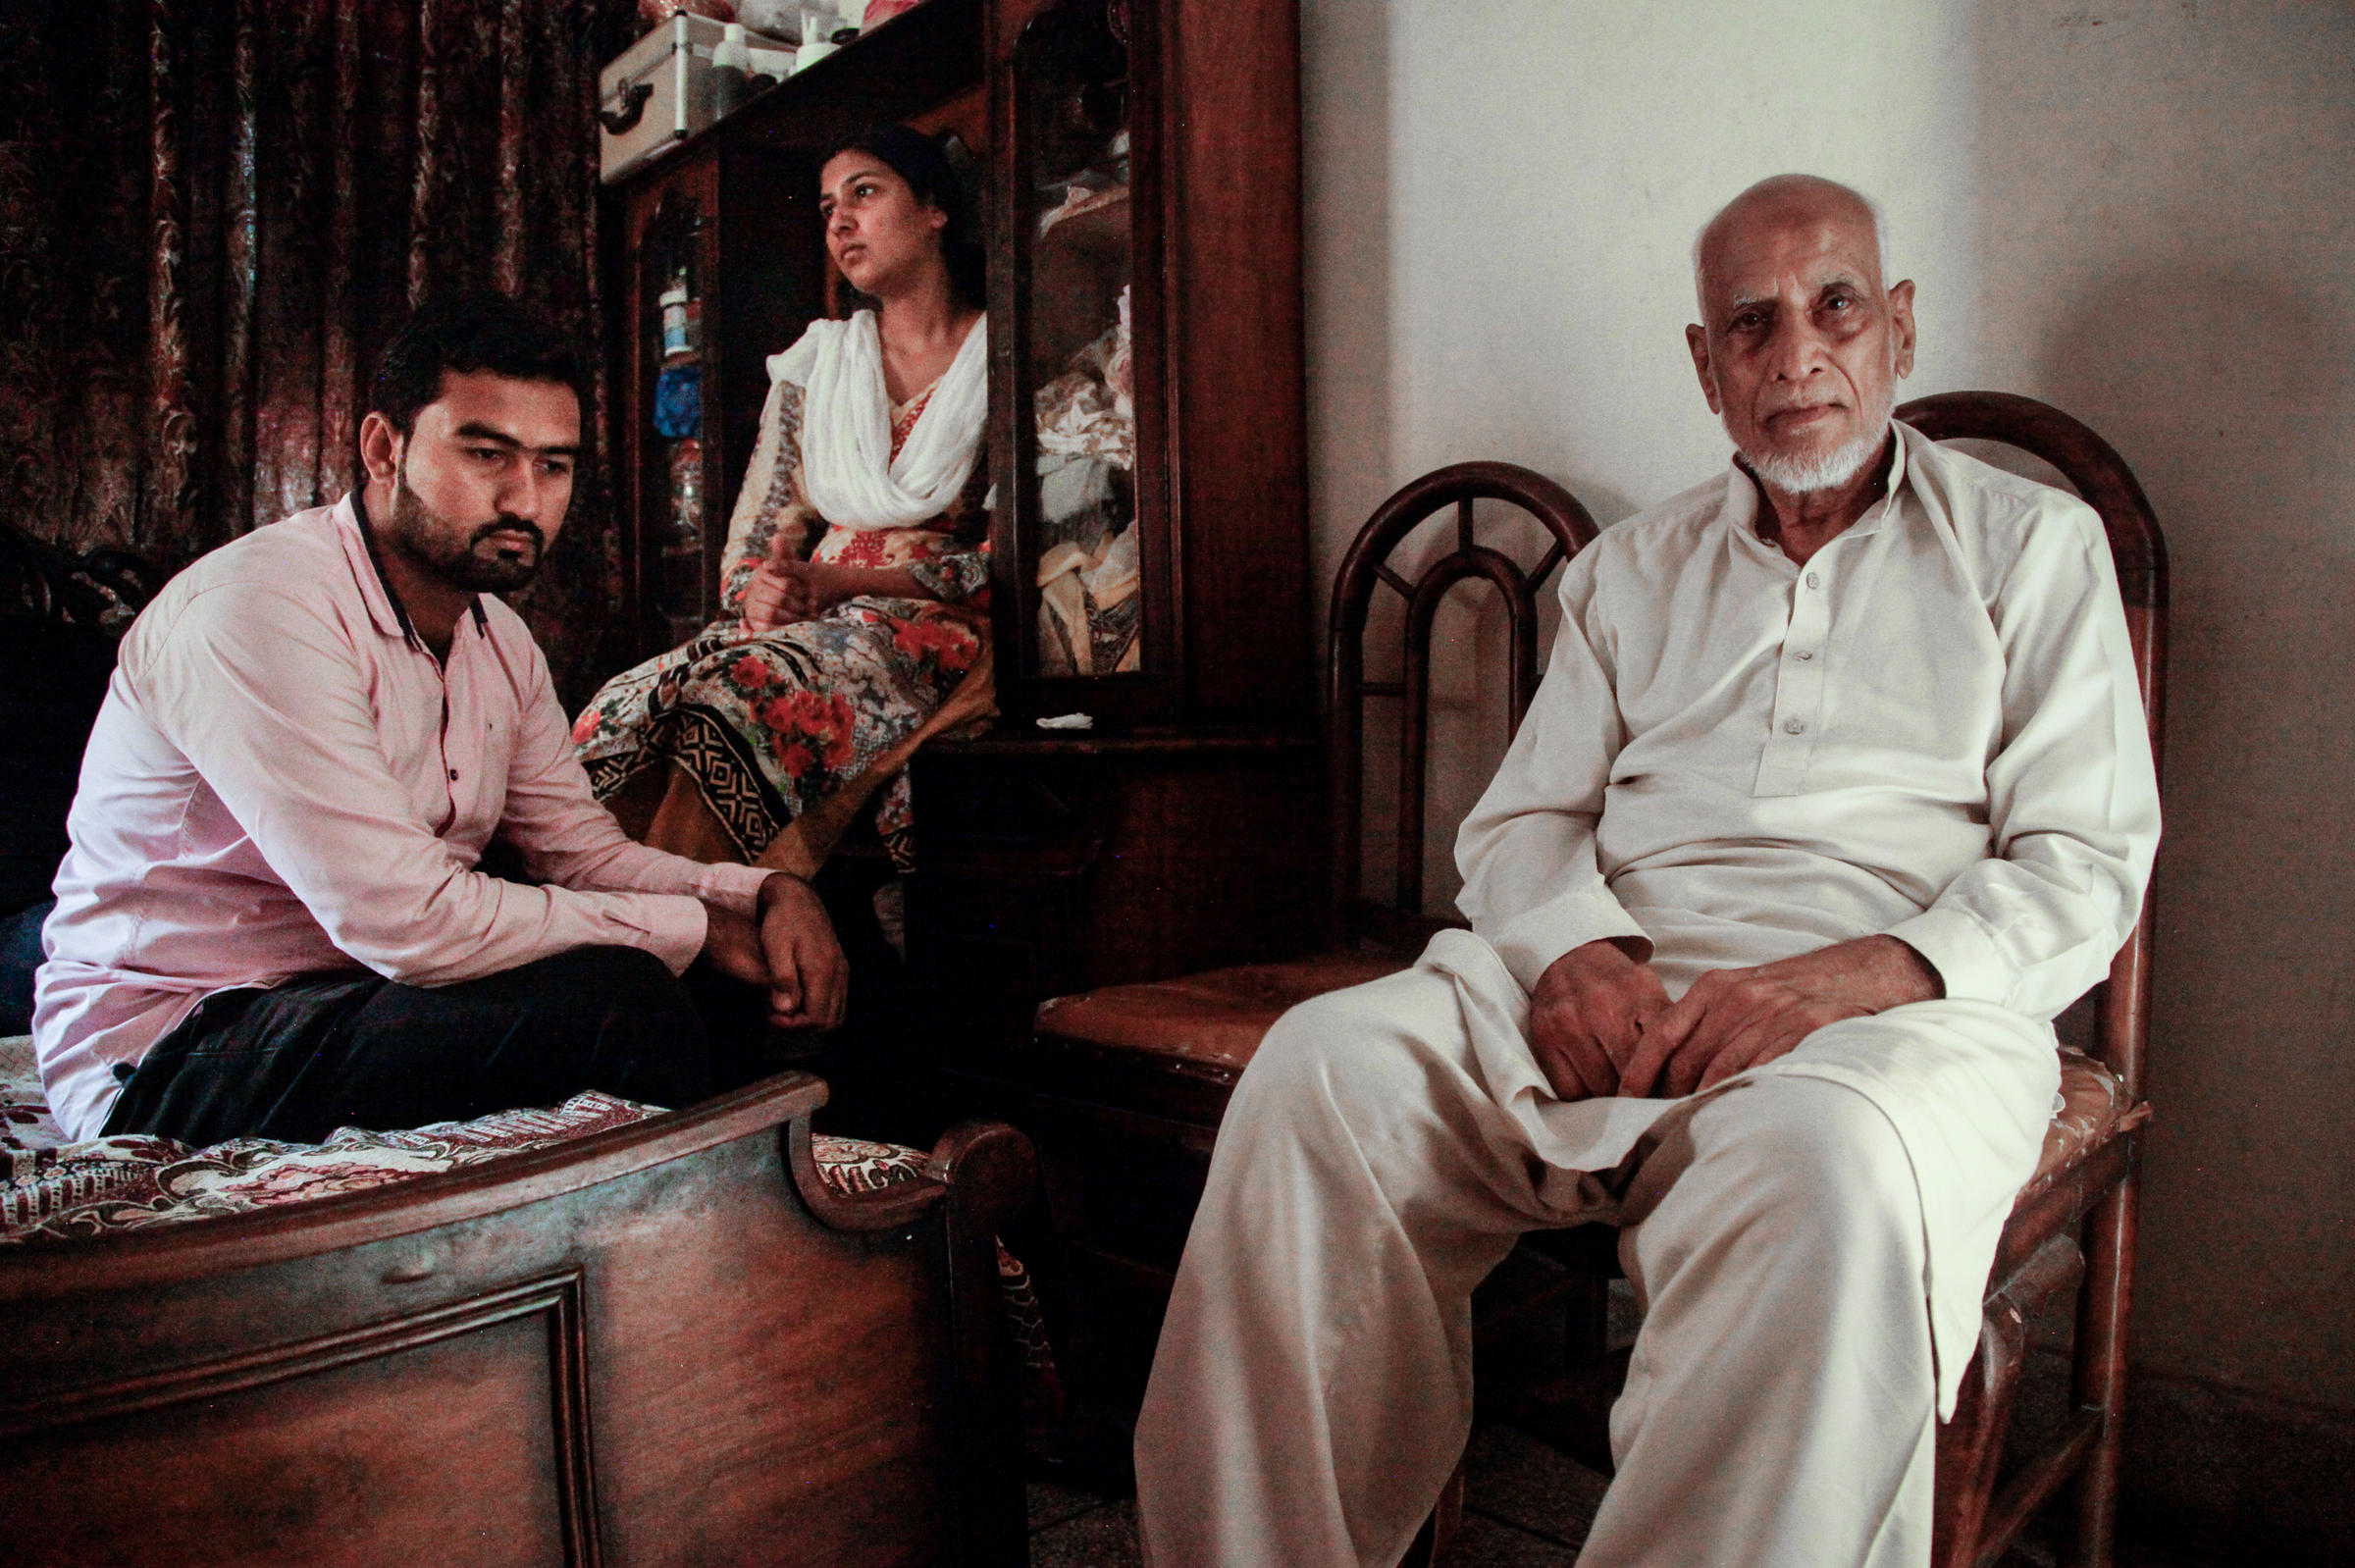 the 1947 communal violence in lahore Taji did not witness any violence and killings himself but recalls hearing stories  from  they have many followers from the khwaja sira community in lahore.